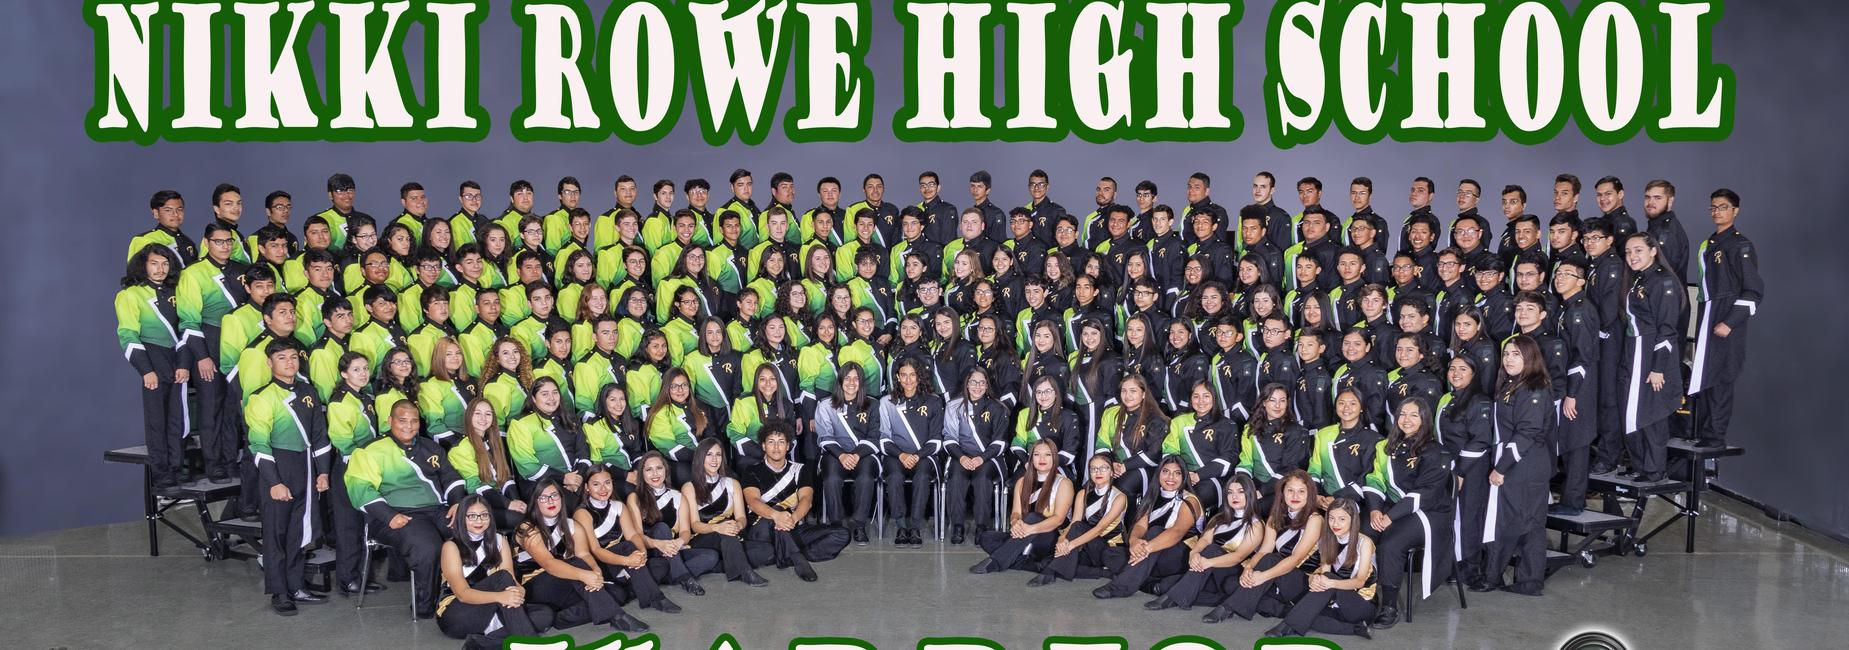 2018-2019 Nikki Rowe High School Warrior Band